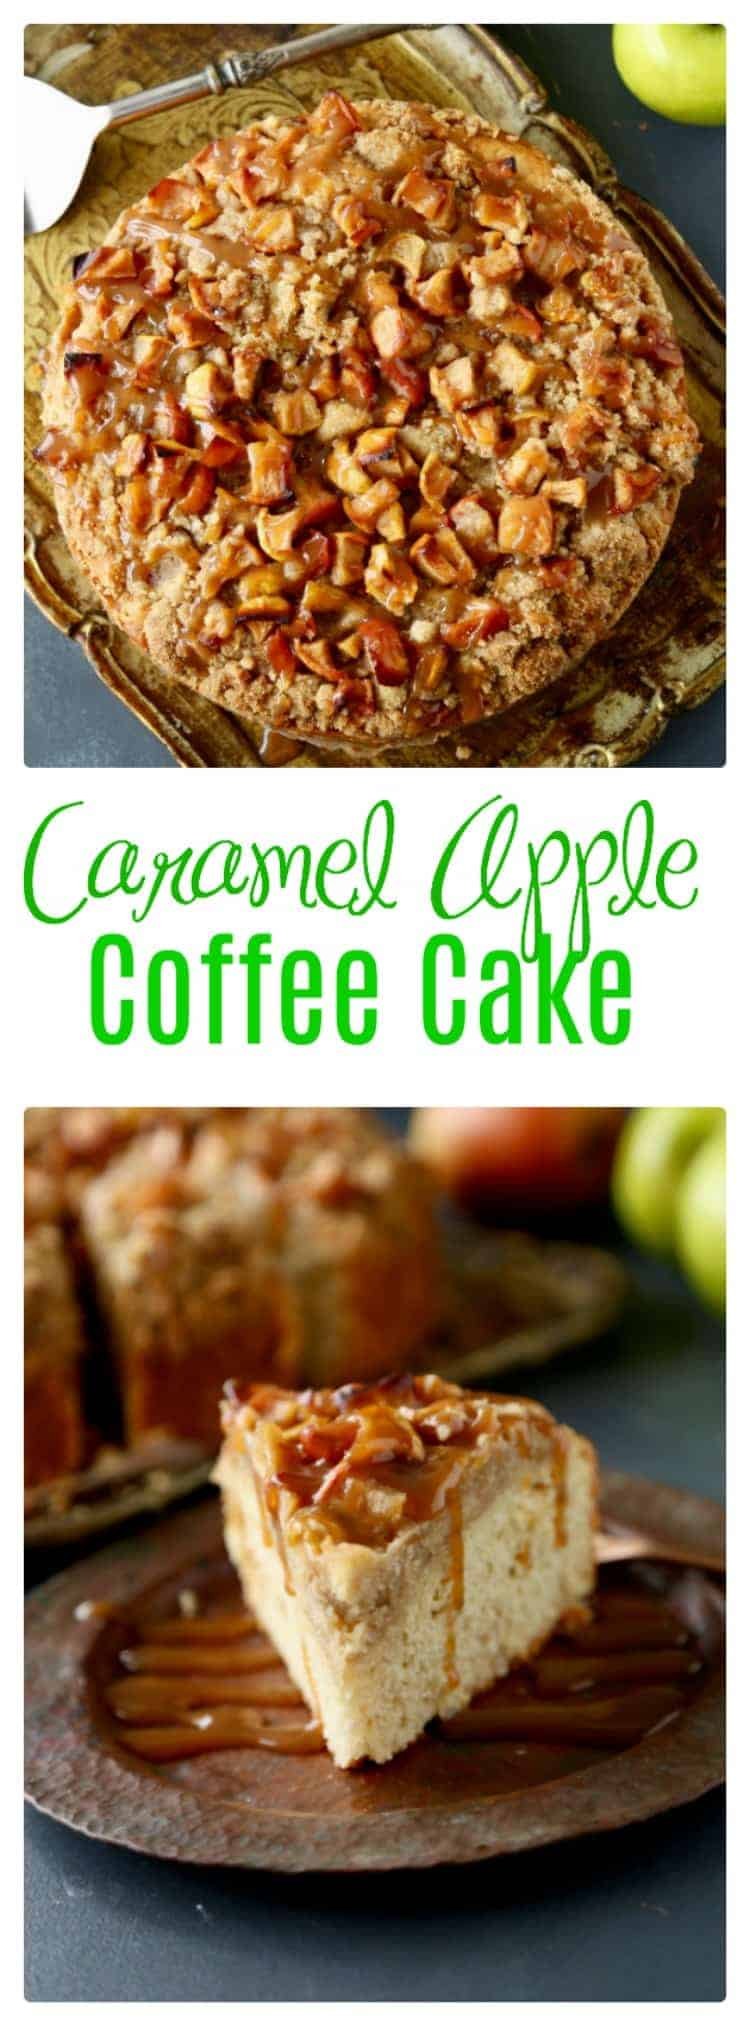 THE BEST CARAMEL APPLE COFFEE CAKE! This Caramel Apple Coffee Cake is the perfect Fall treat. With a butter base and deliciously sweet crumb caramel apple topping, it will make you swoon.